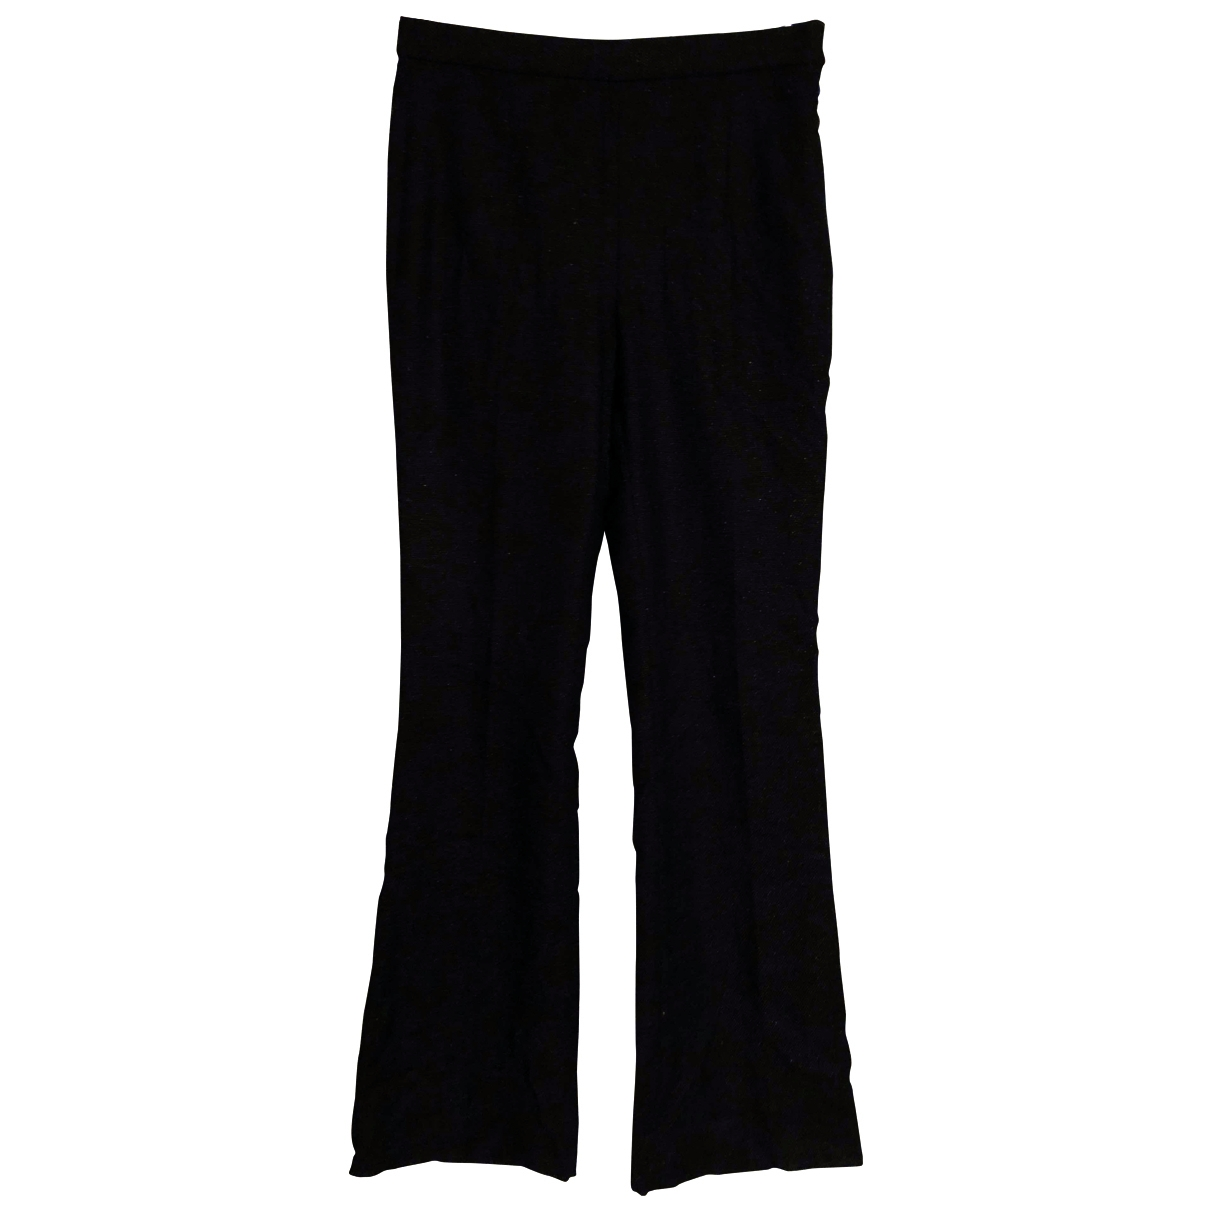 Massimo Dutti \N Black Cotton Trousers for Women 8 US